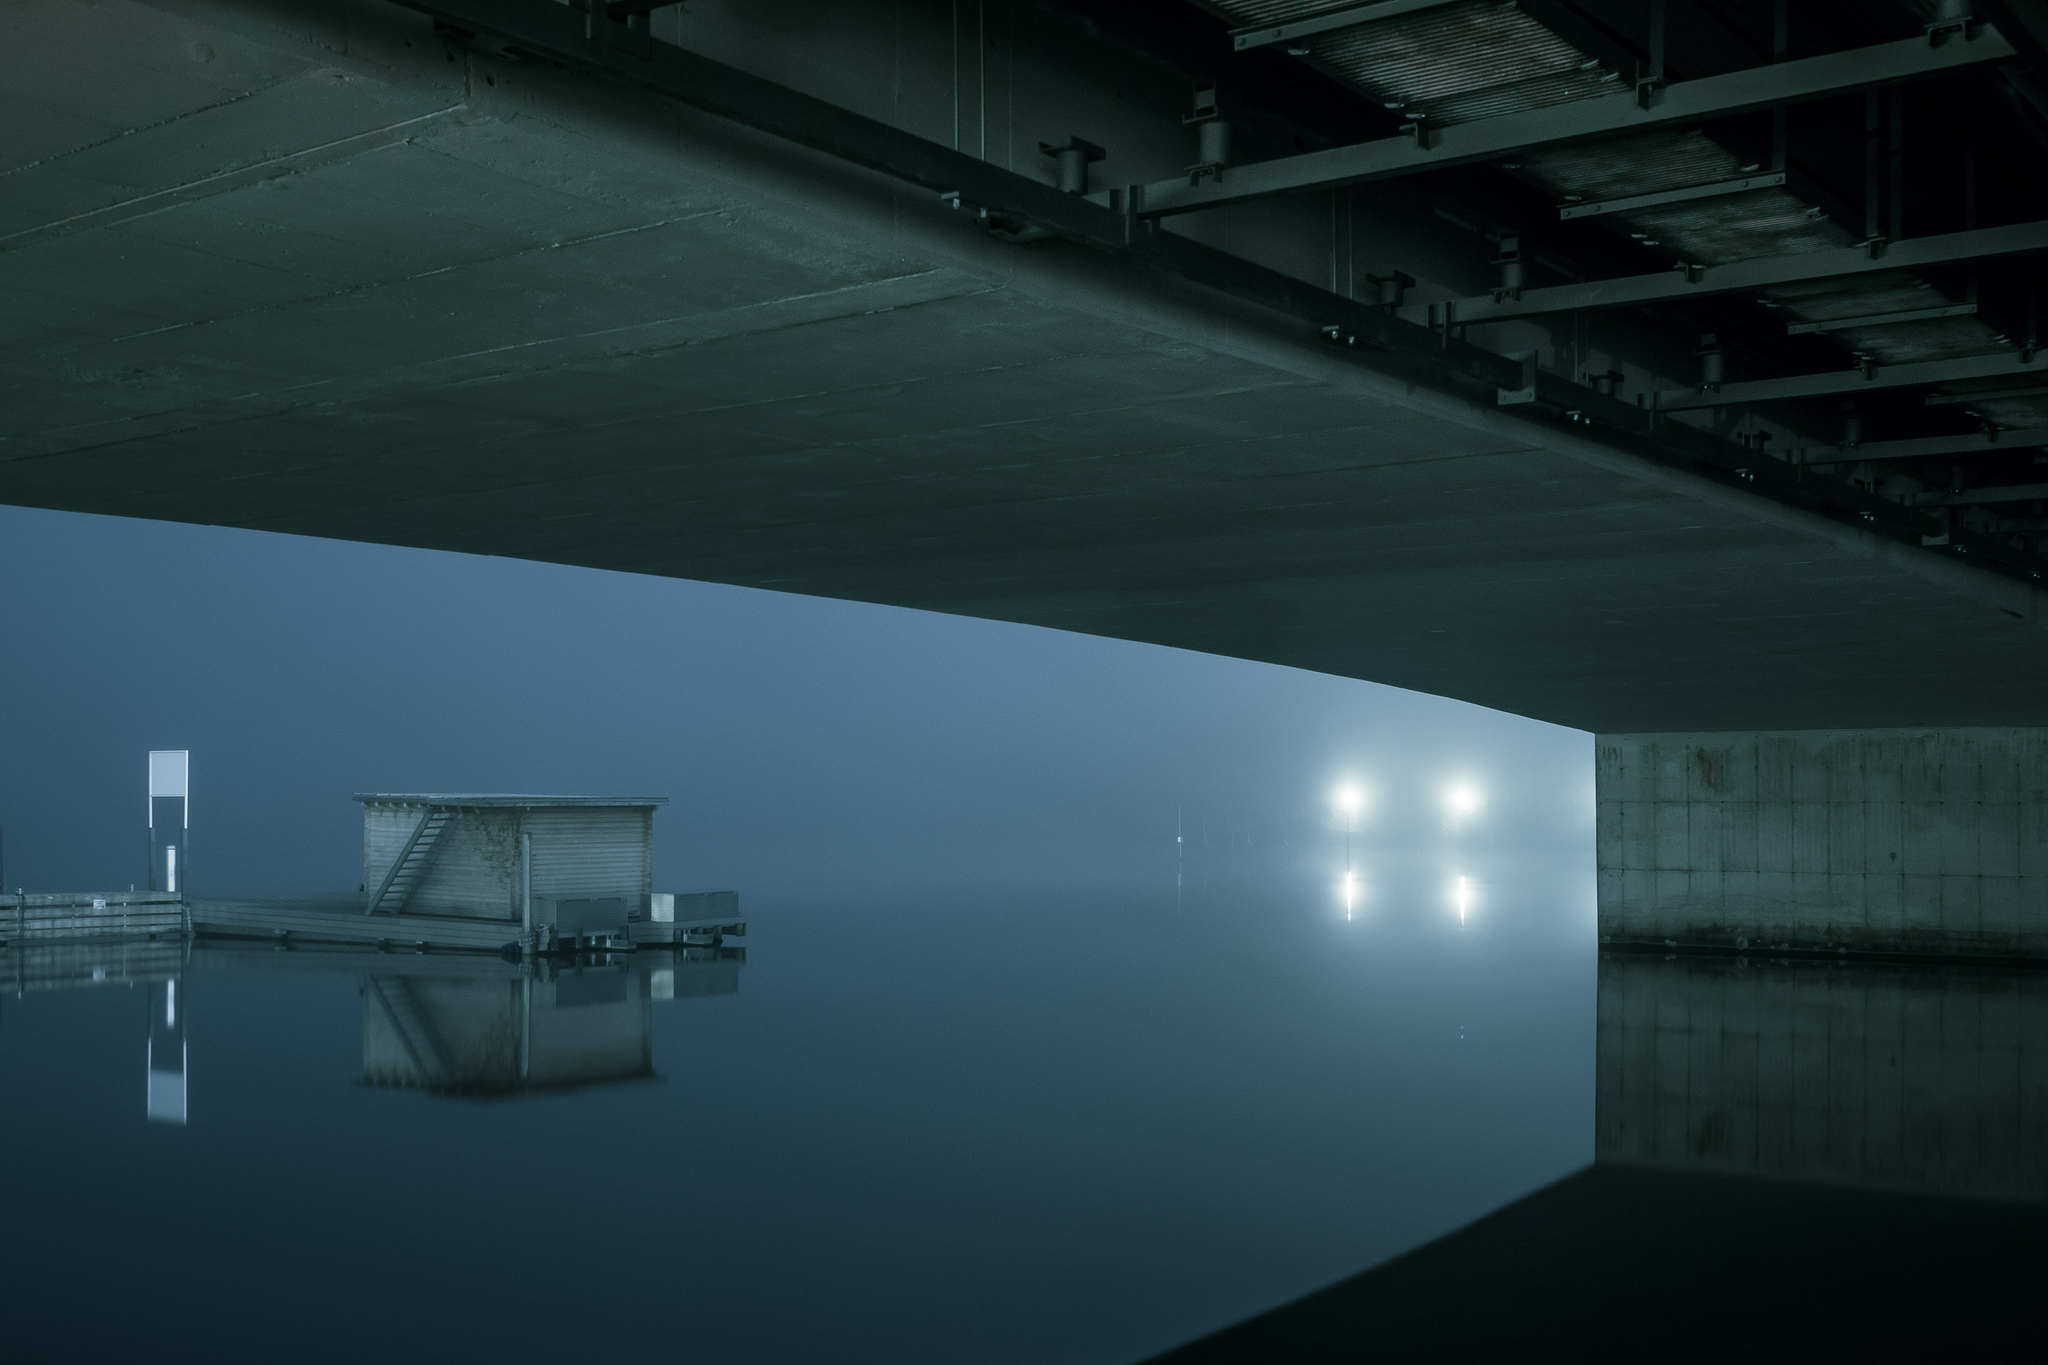 Andreas Levers - At Night Bridge